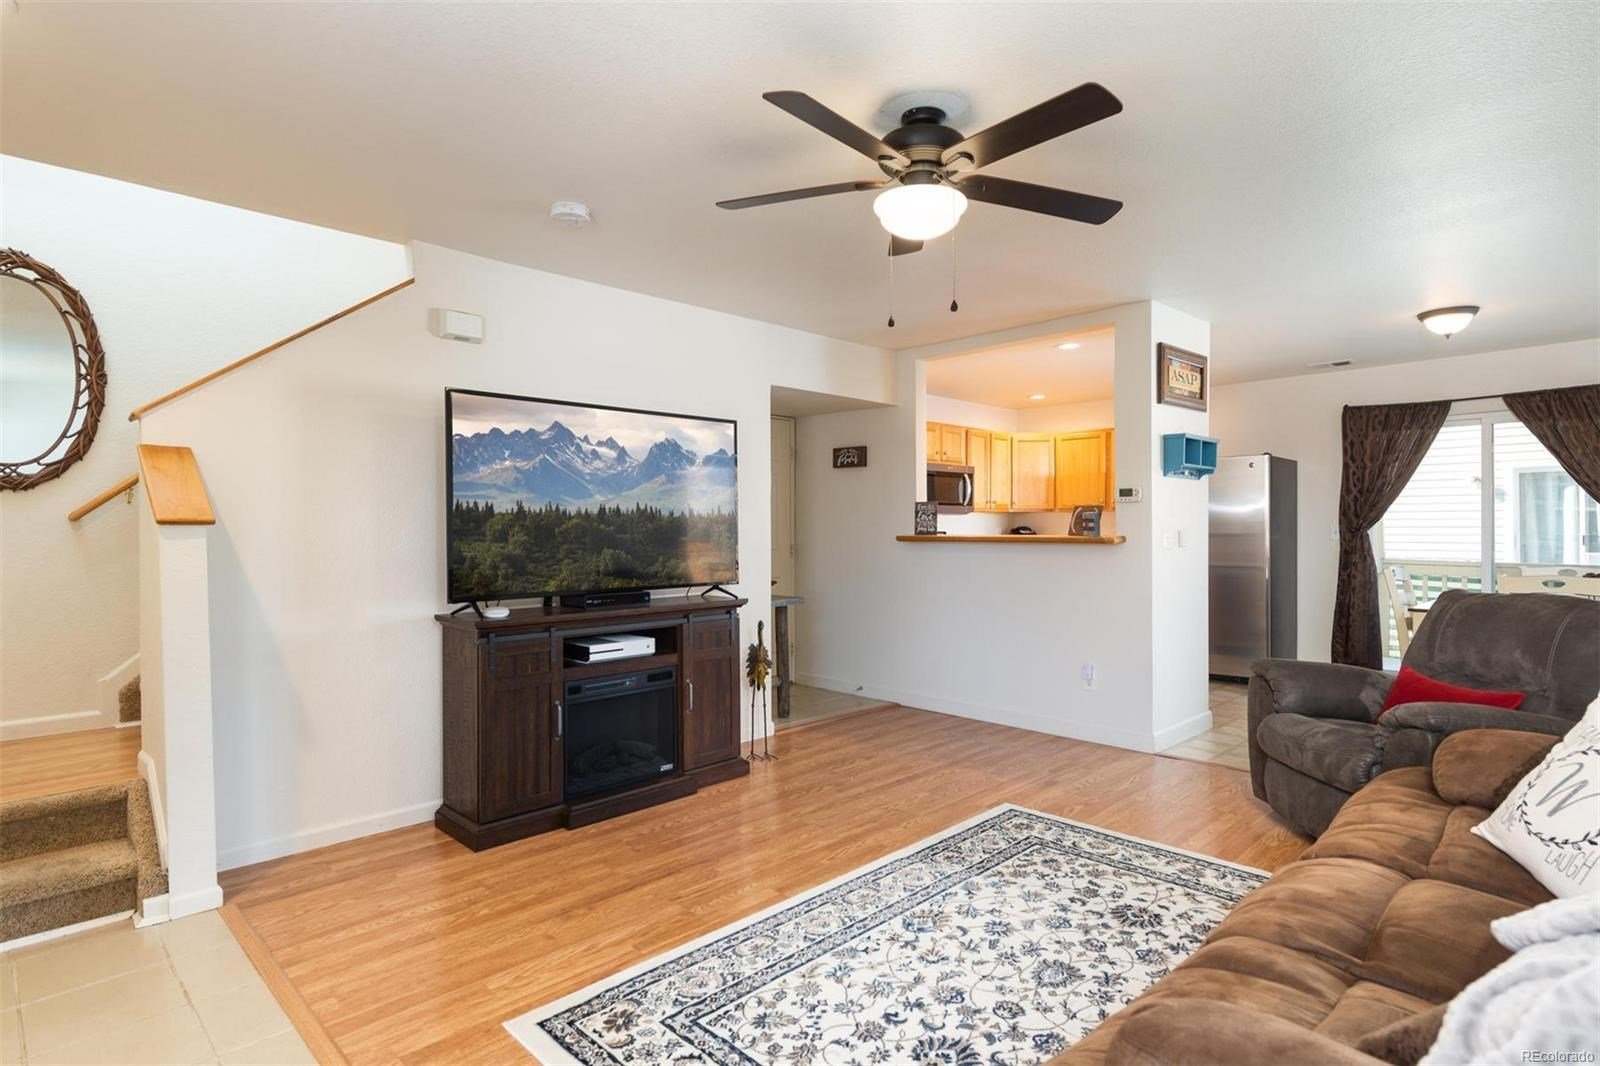 MLS# 6800957 - 2 - 8891 Lowell Way, Westminster, CO 80031